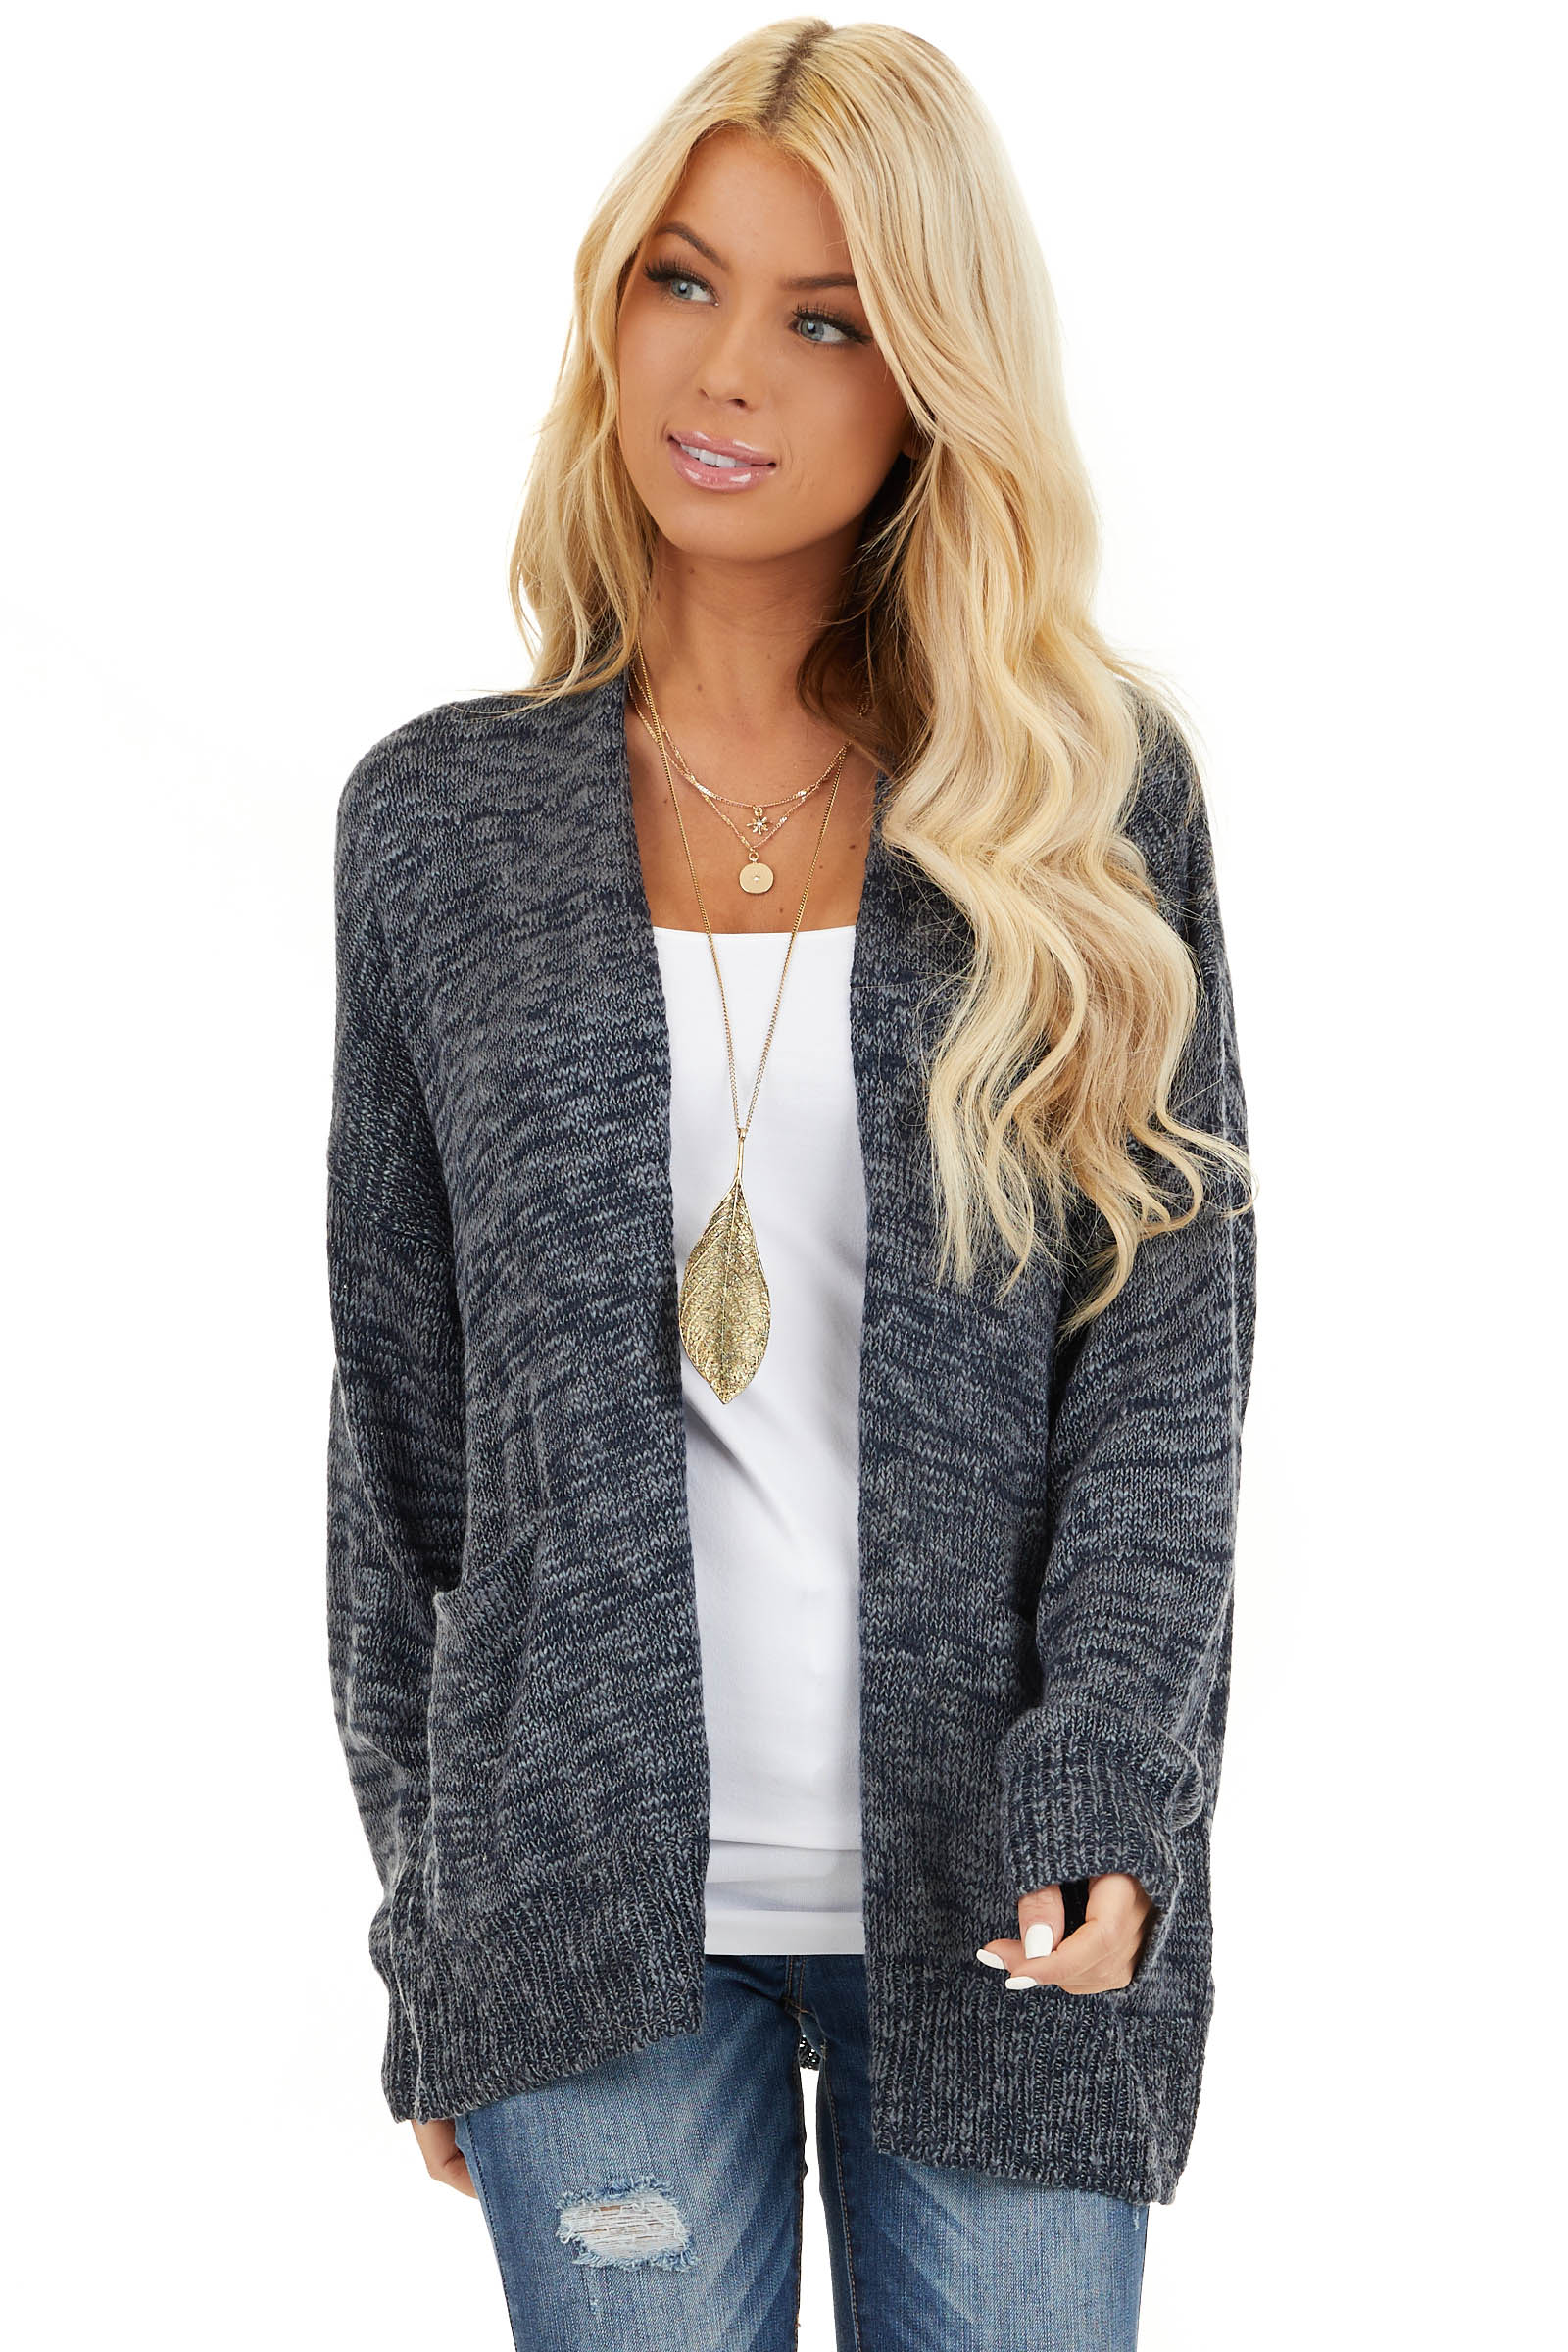 Deep Navy Two Tone Open Front Cardigan with Pockets front close up